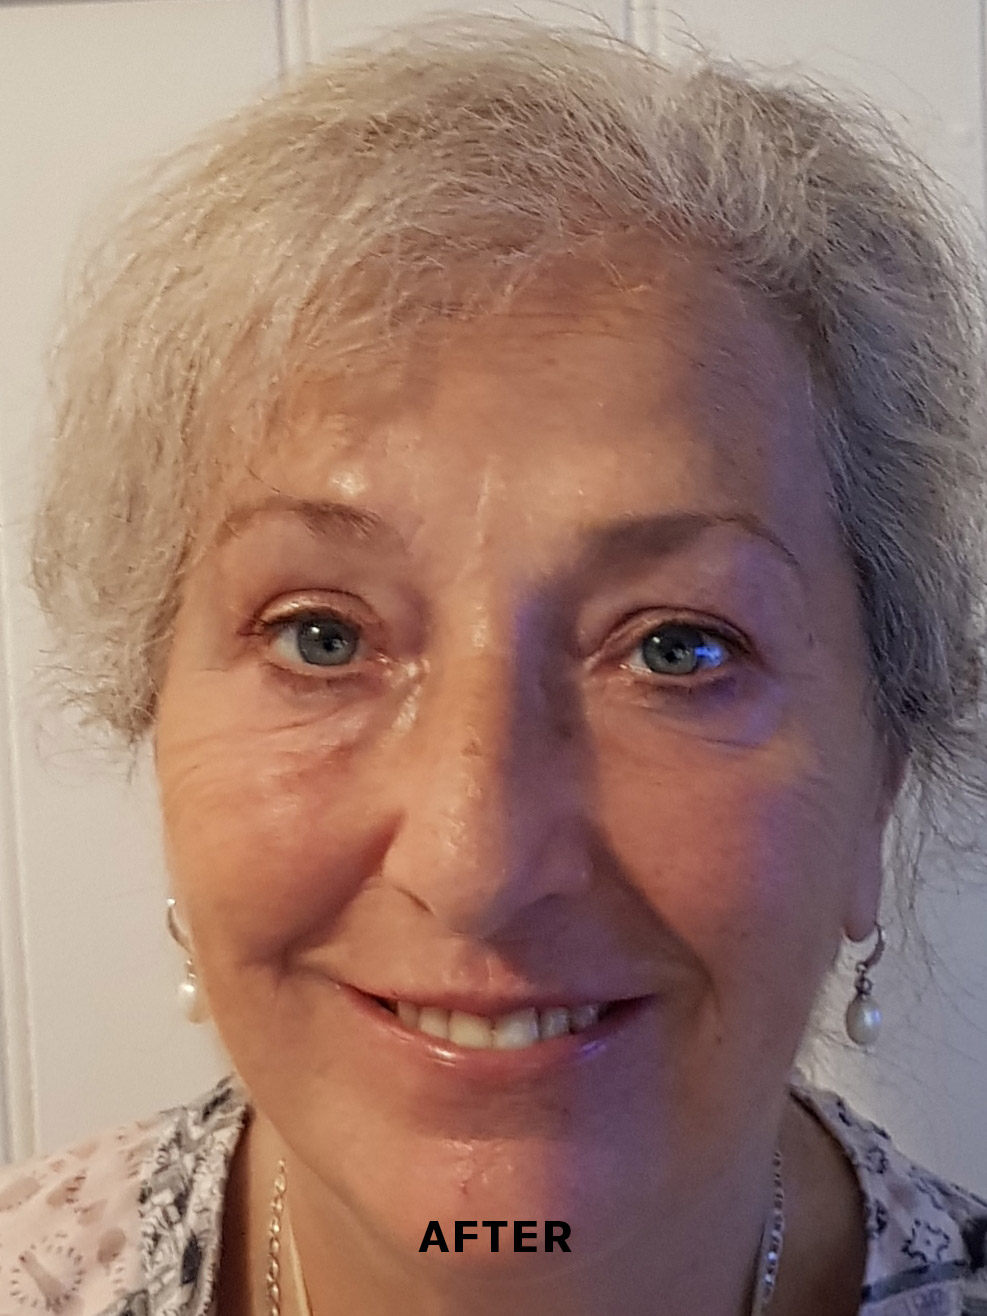 Non-surgical face lift results